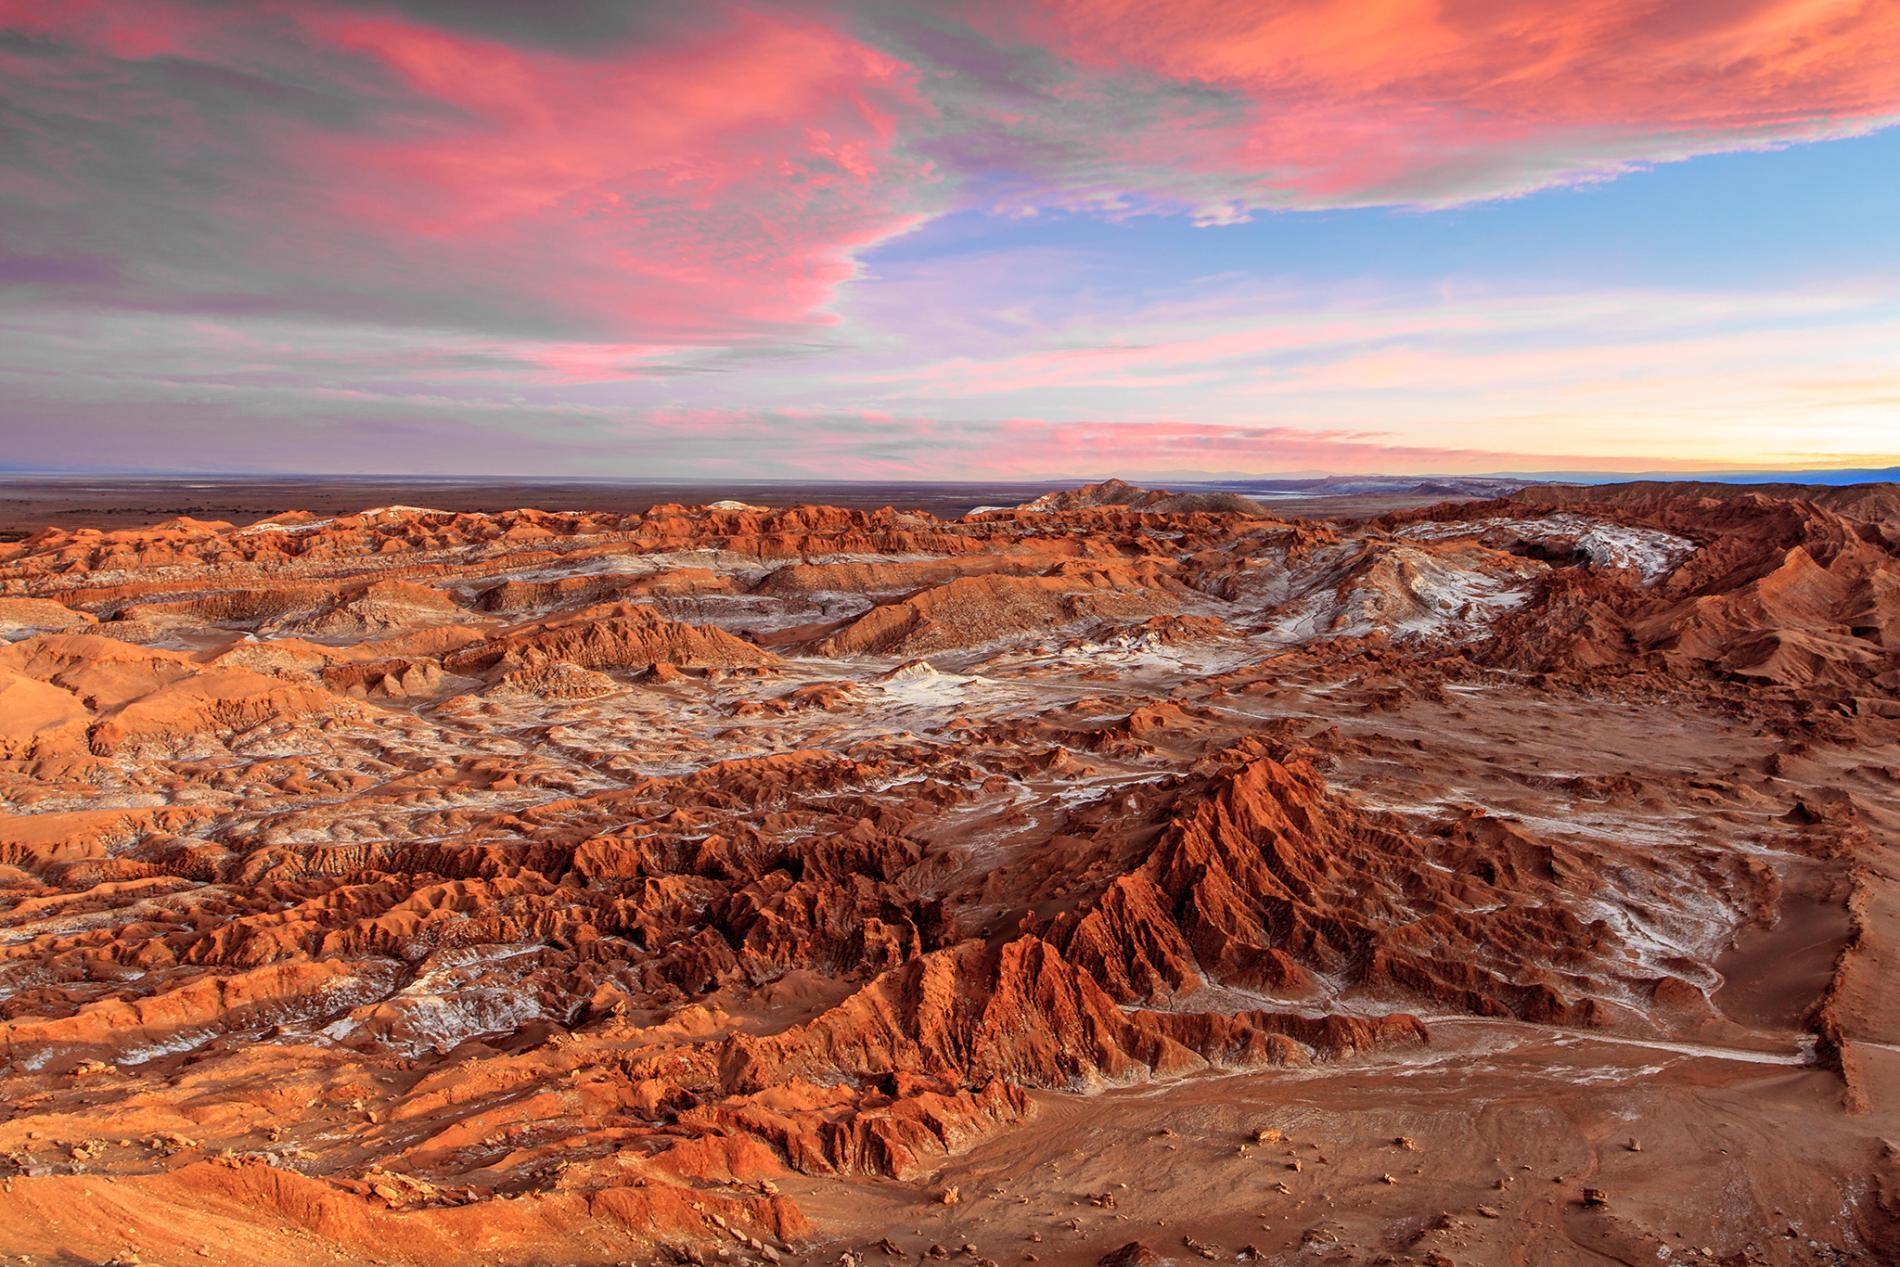 valley-moon-atacama-desert.jpg